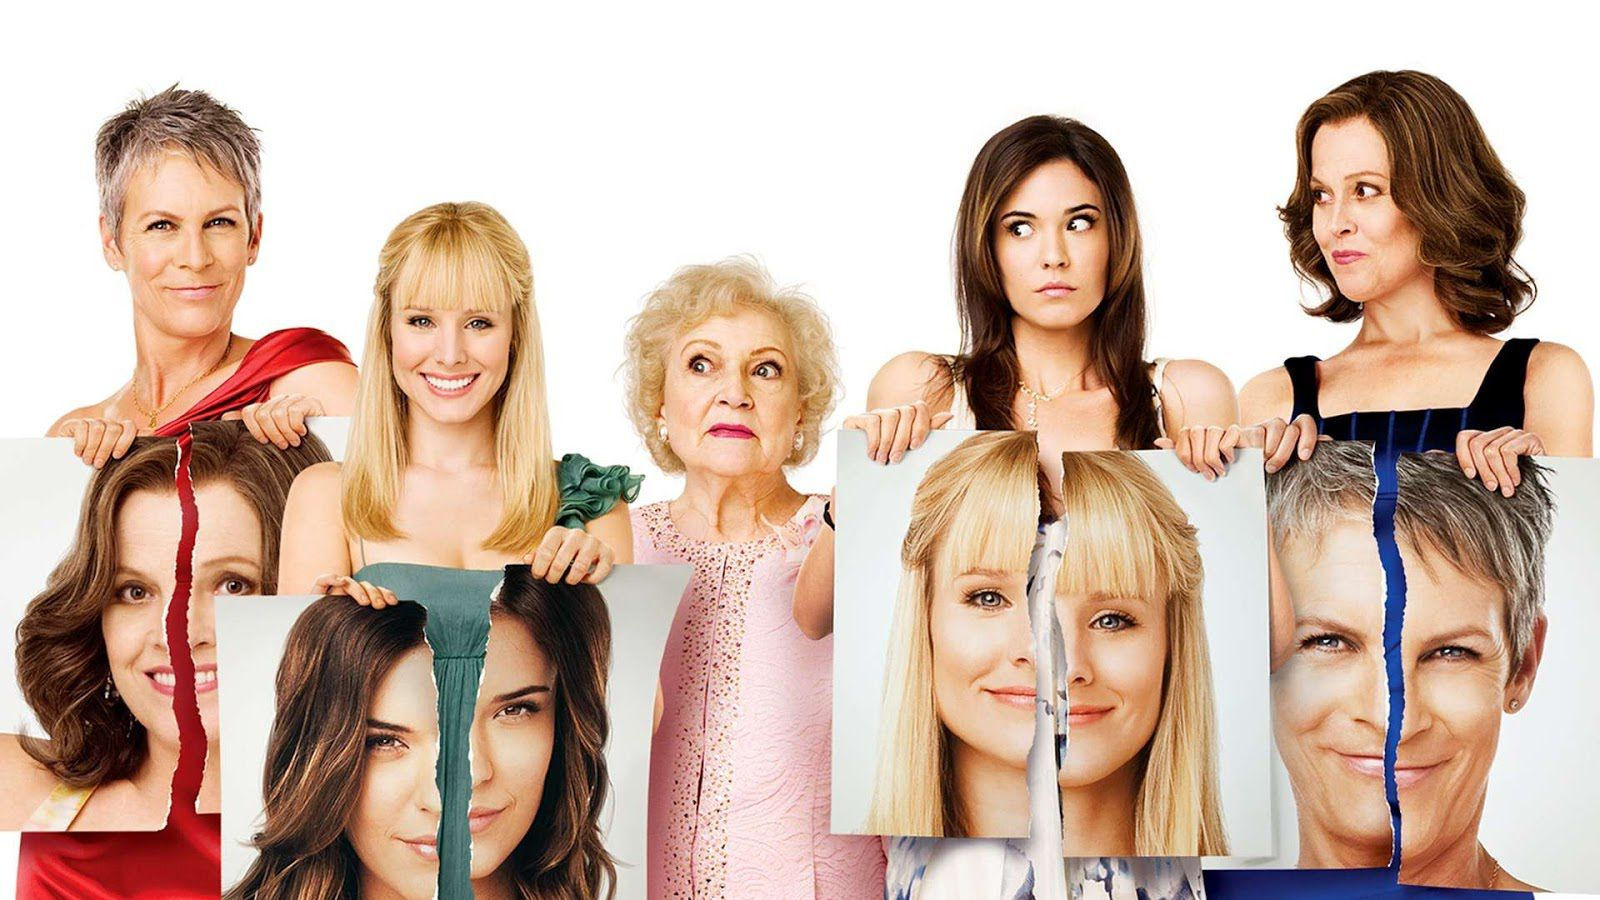 Ancora Tu - You Again - Kristen Bell - Sigourney Weaver - Jamie Lee Curtis - Odette Yustman - Betty White - cast